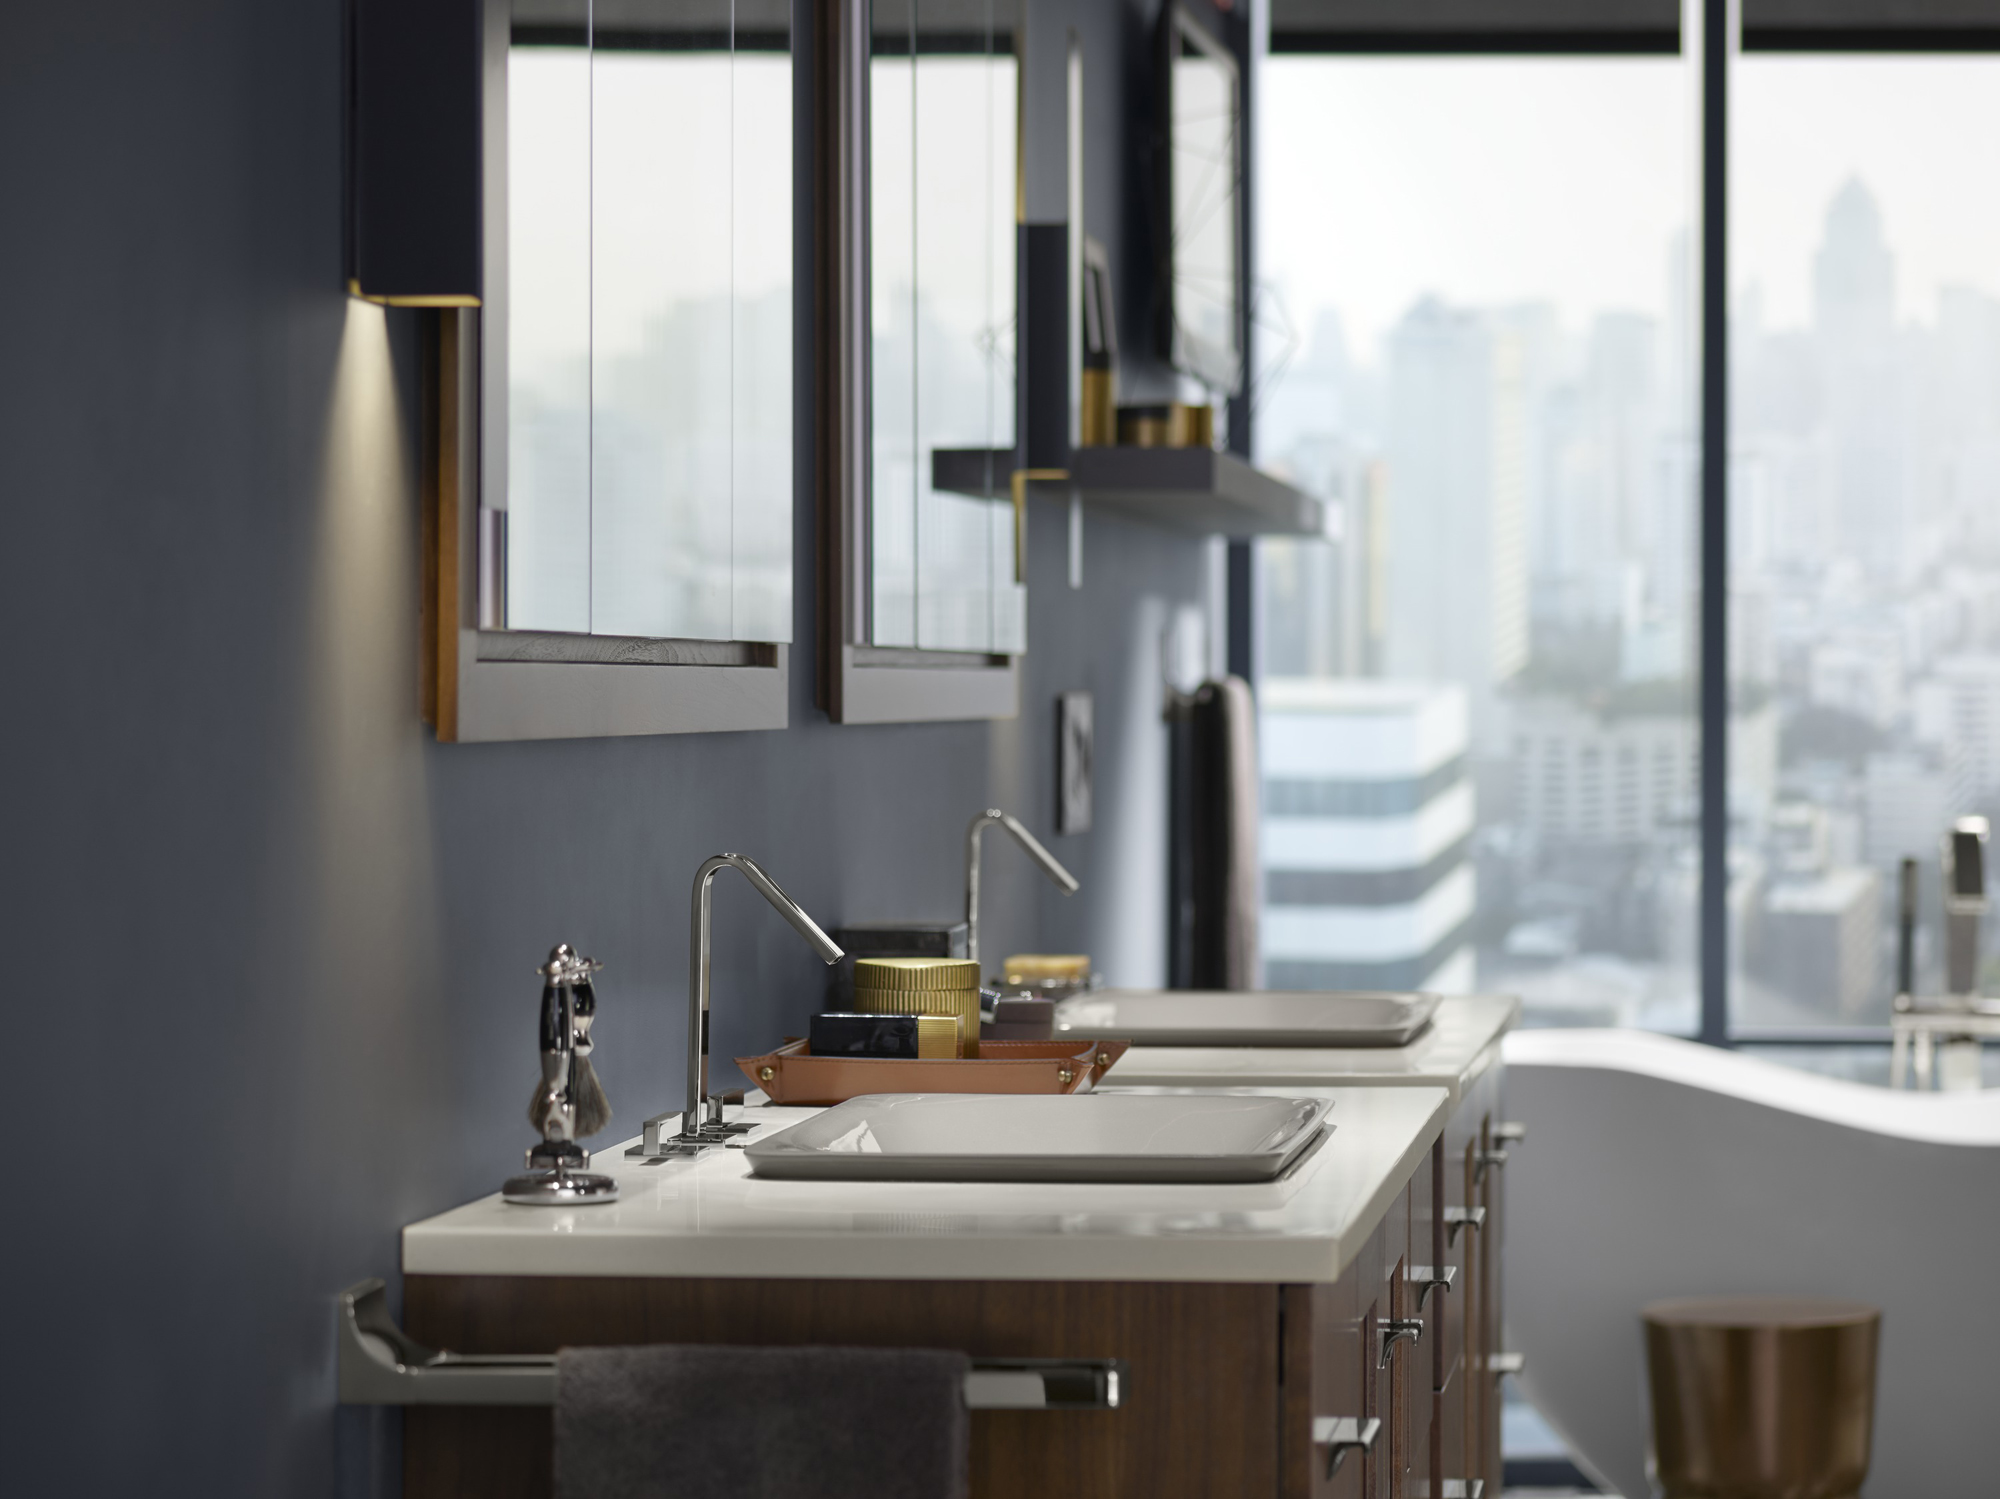 Solid/Expressions® vanity top    Loure® faucet     Ultra-sleek faucets and low-profile Carillon® Wading Pool® sinks keep the vanity area looking modern and clutter-free.